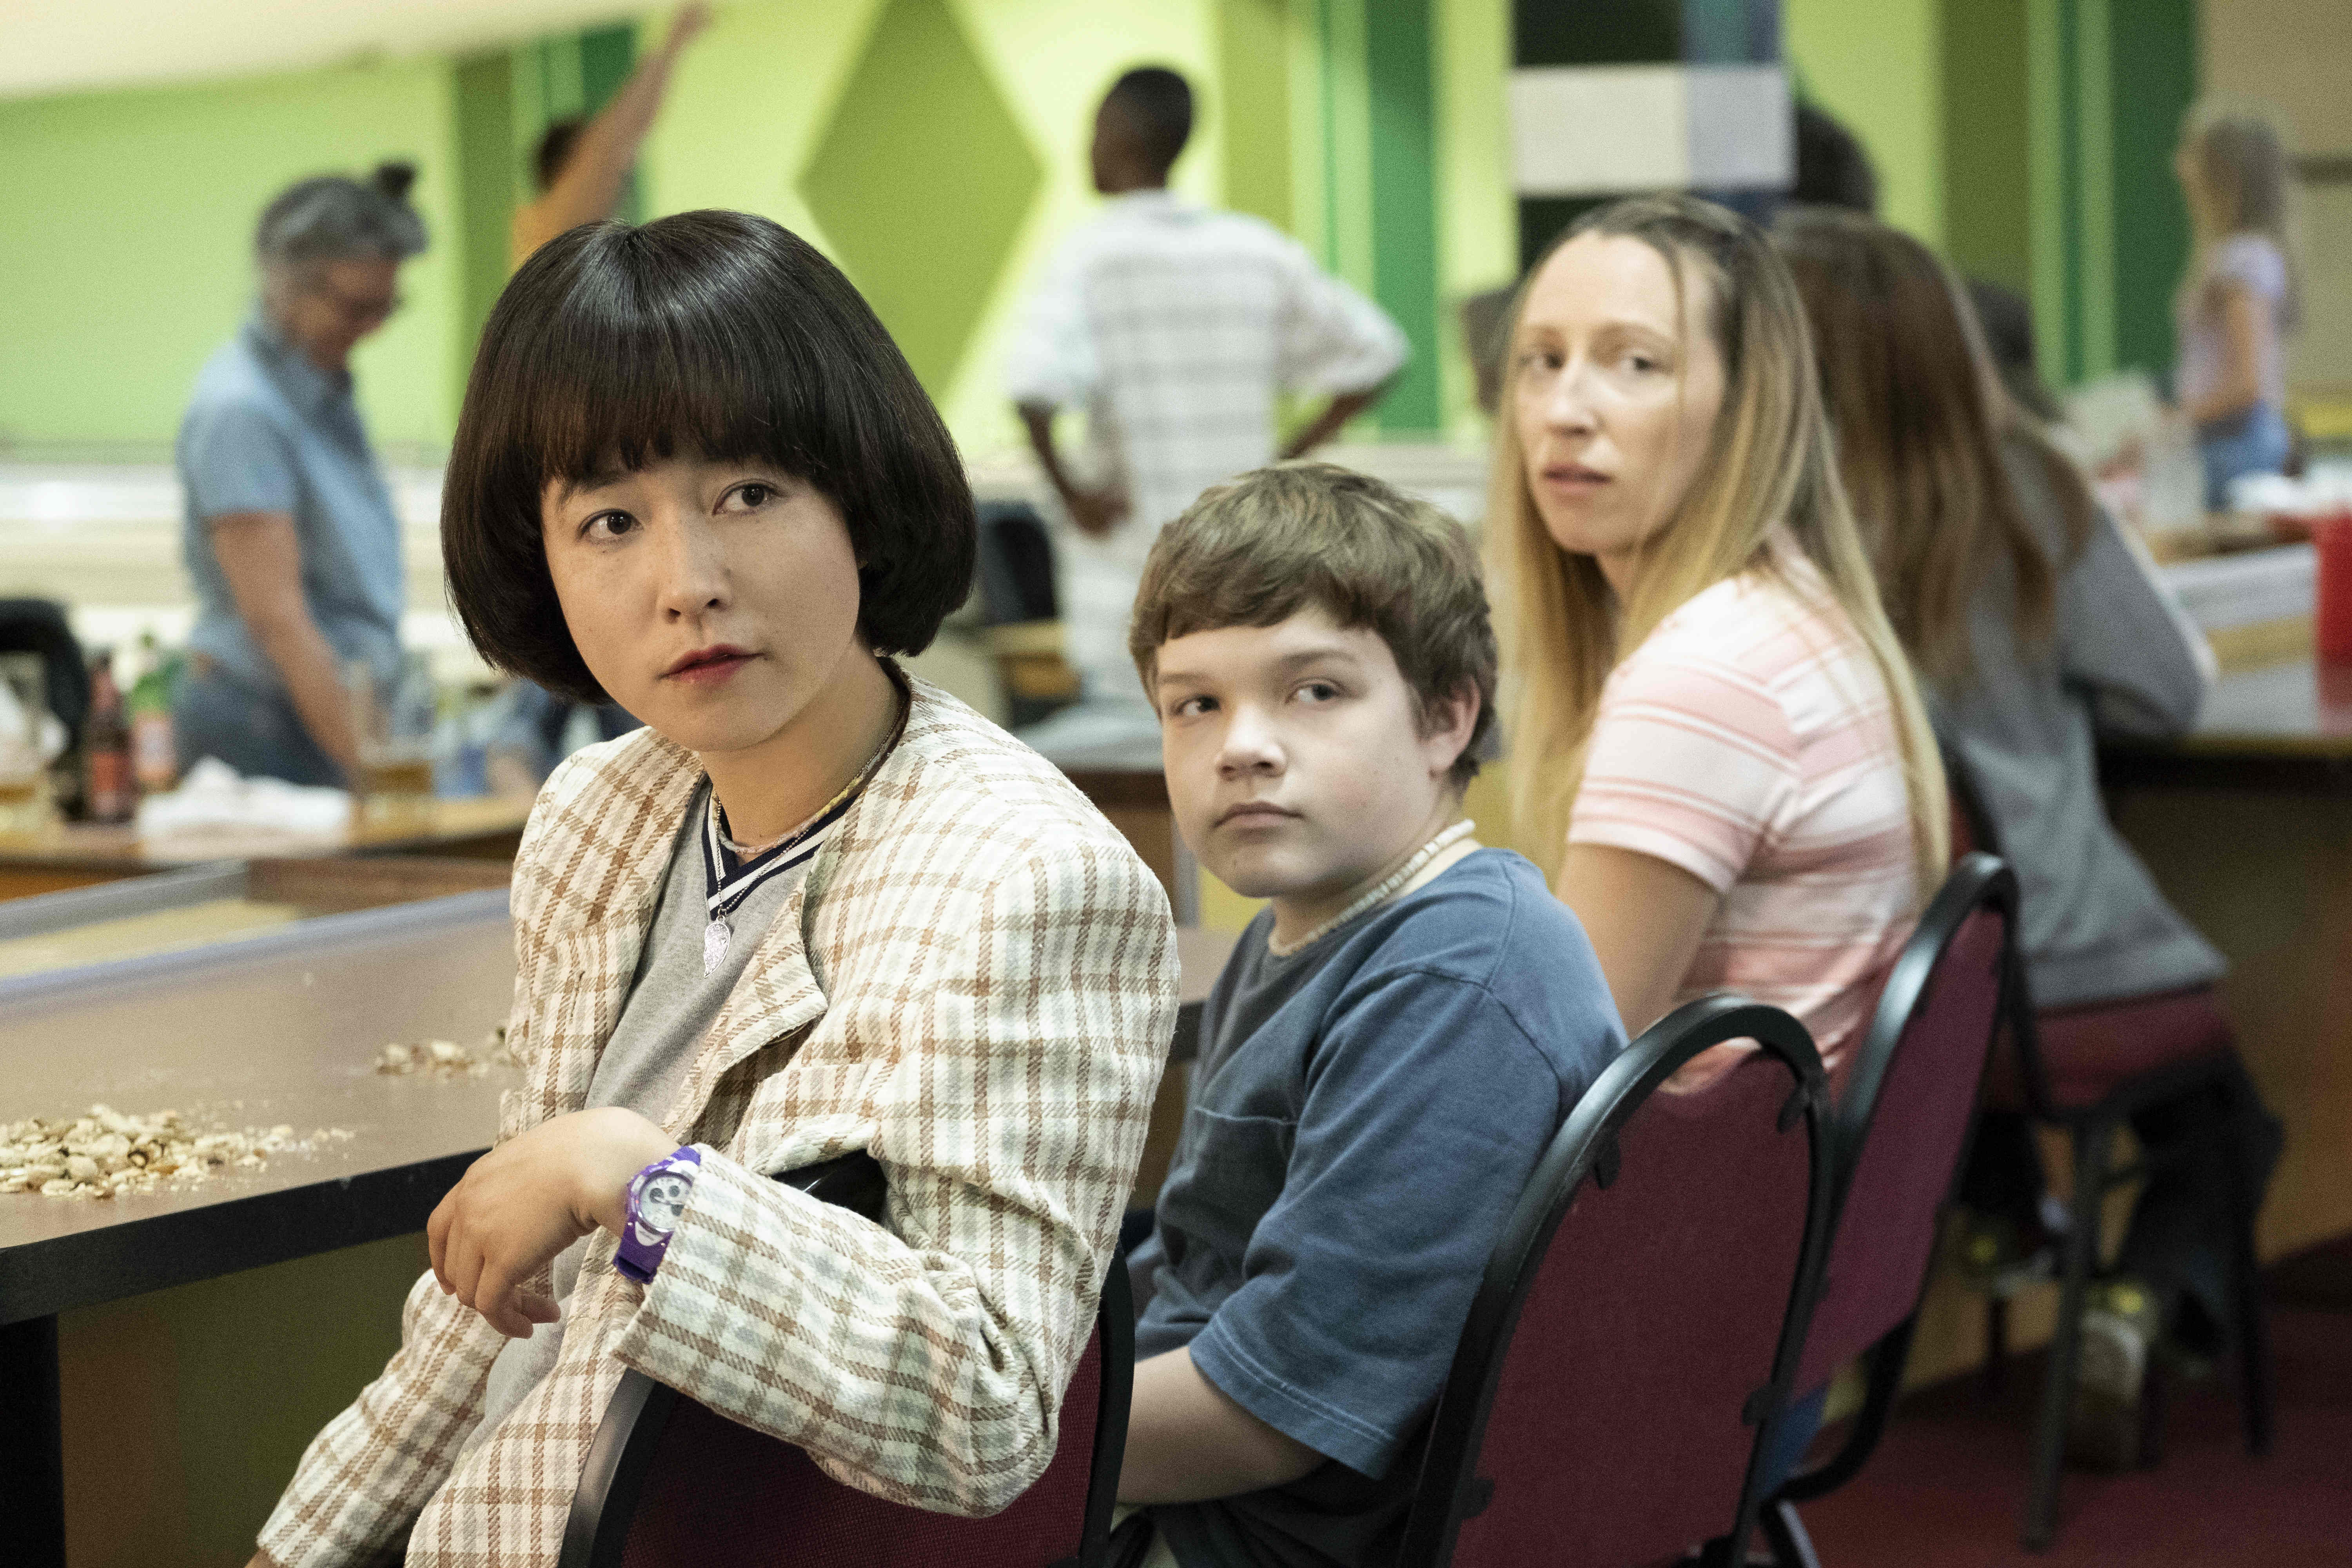 Pen15 Hulu S Upcoming Comedic Gem Is Slammed But Everyone S Missed The Point Of The Show Meaww